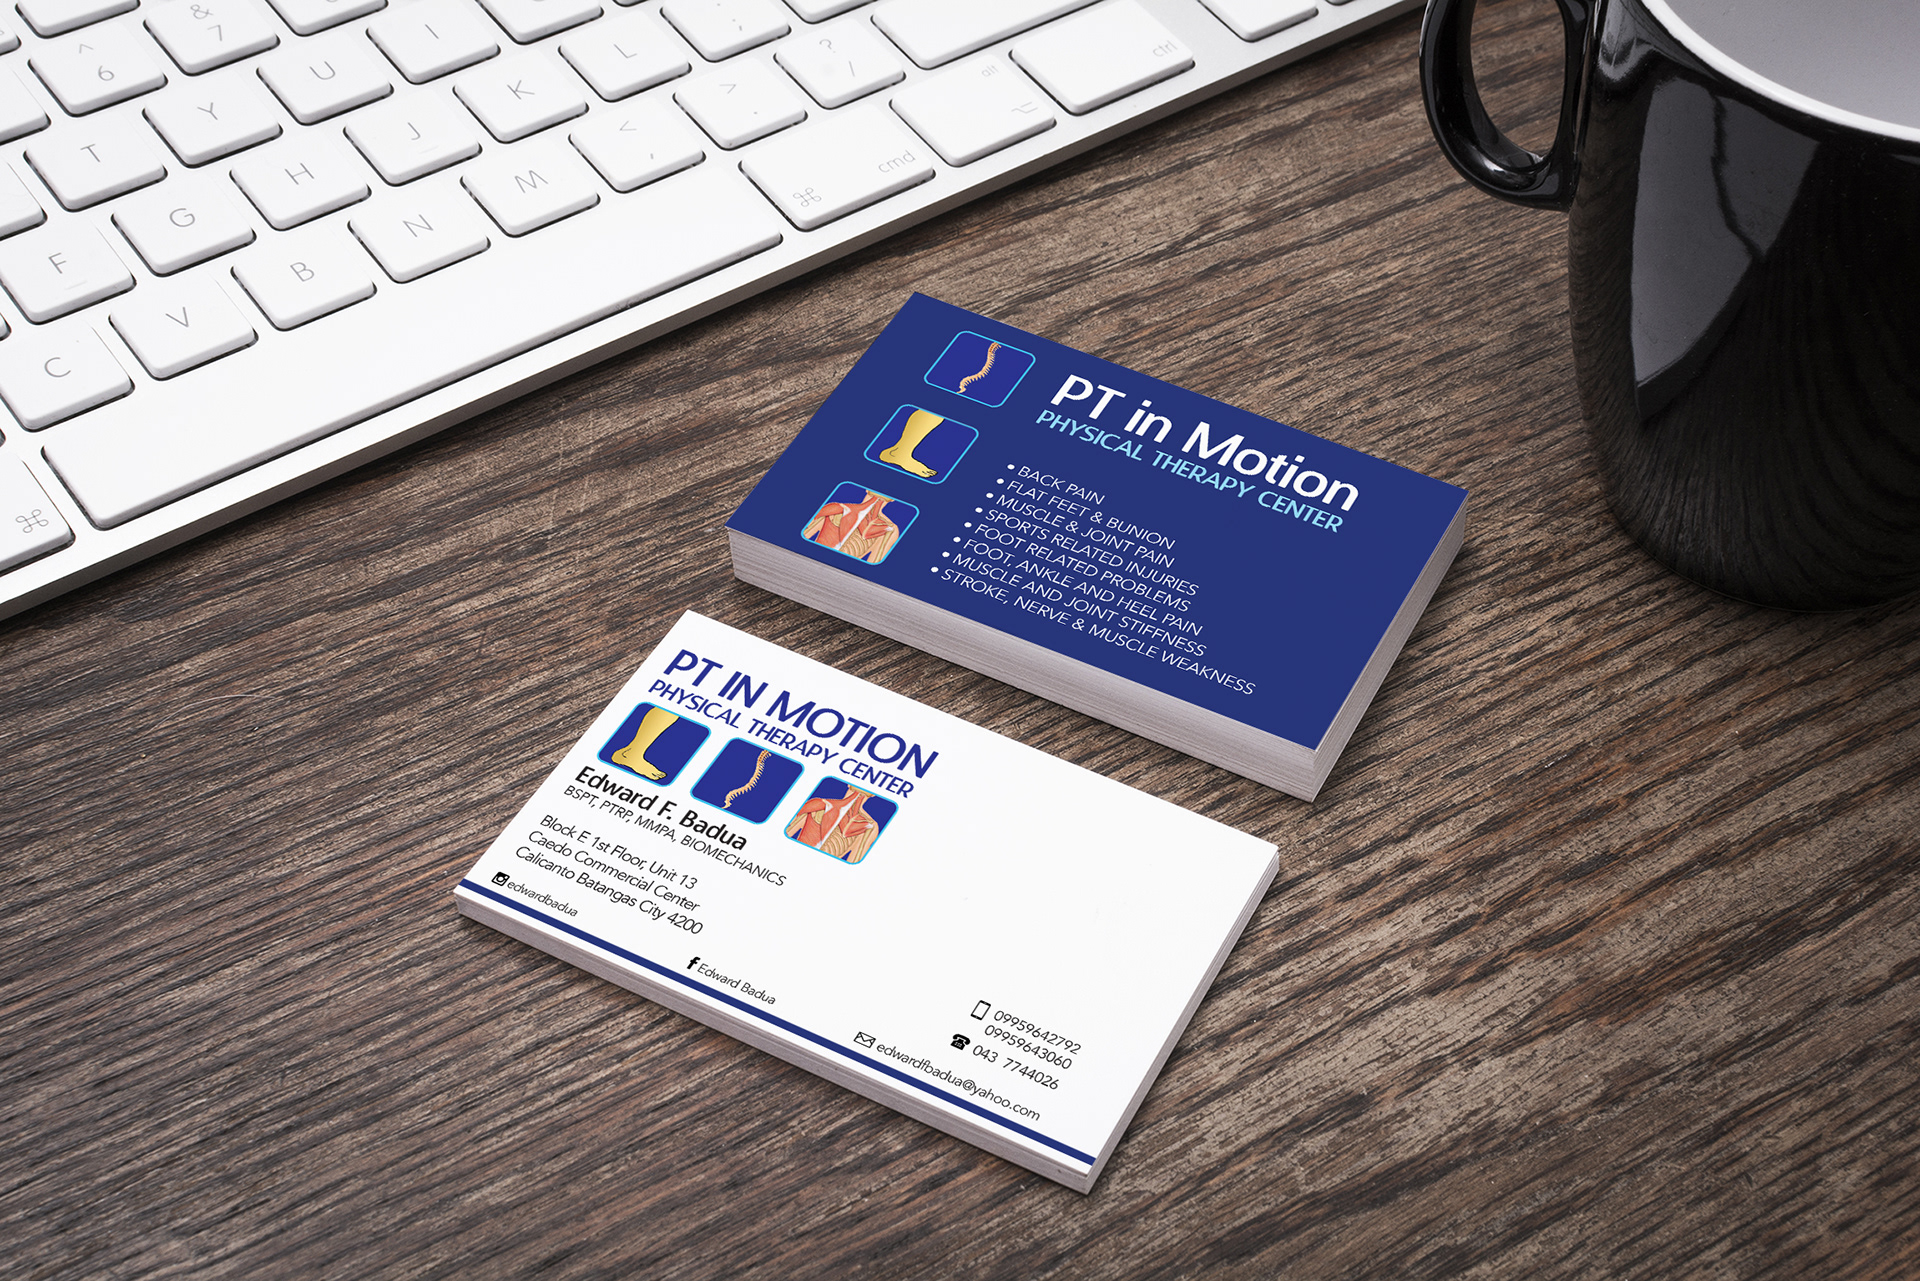 Aki jinn studio business card design for pt in motion business card design for pt in motion physical therapy center a high quality physical theraphy center opened by mredward badua colourmoves Gallery